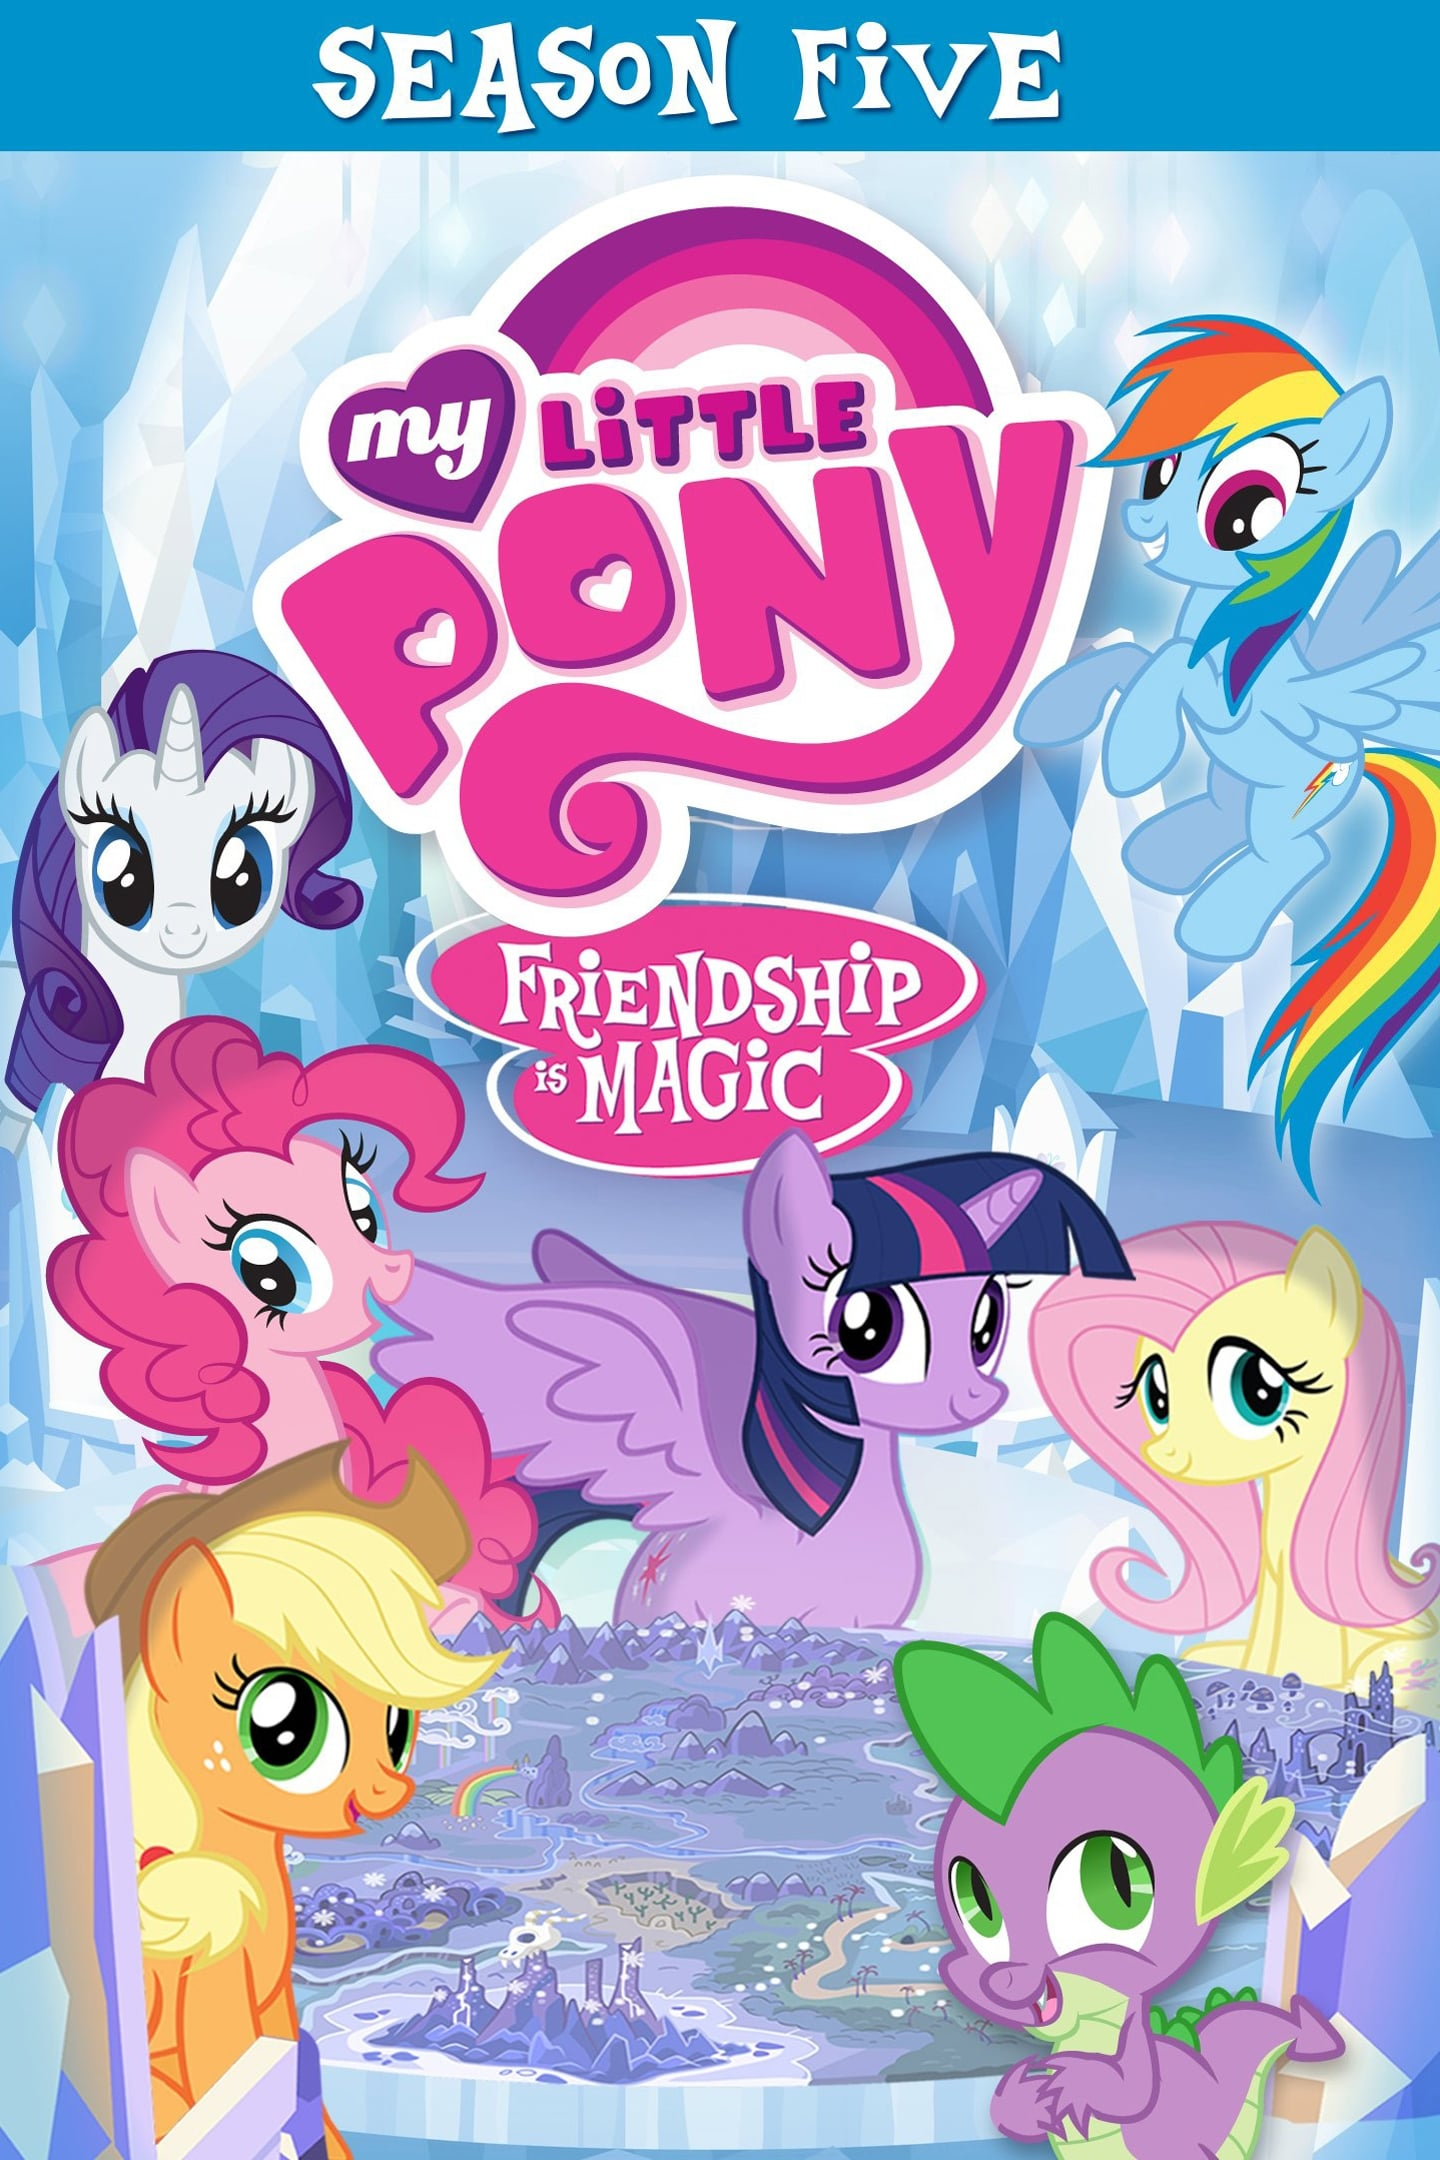 My Little Pony: Friendship Is Magic Season 5